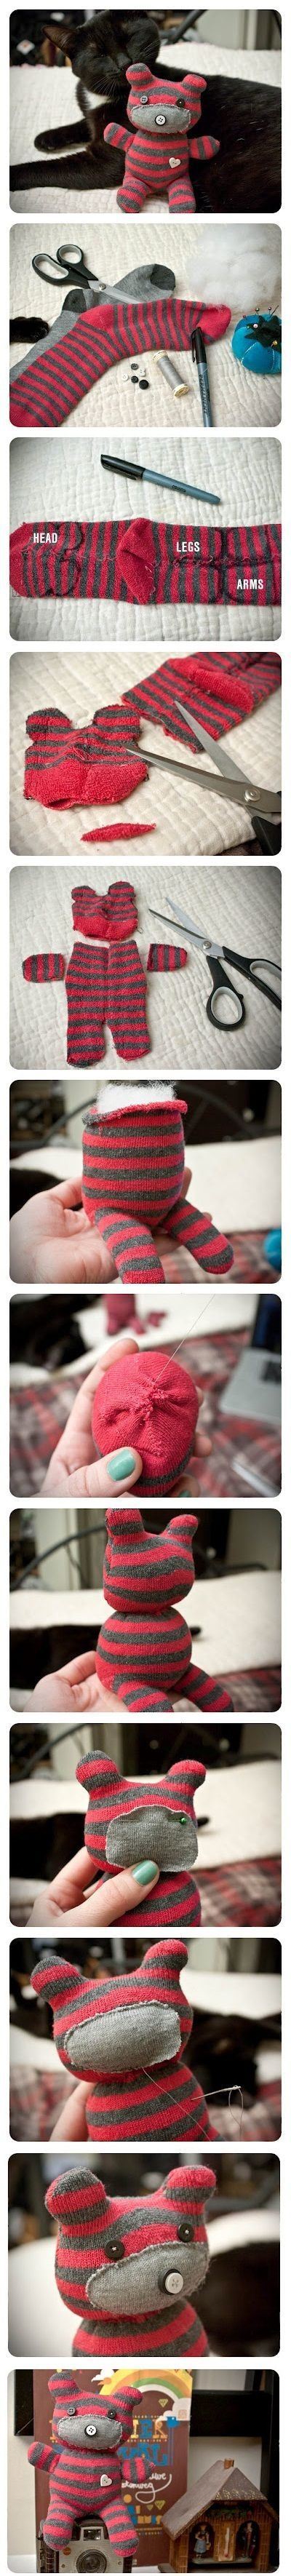 DIY Cute Little Teddy Bear. Cuter cat! :D by vernmh